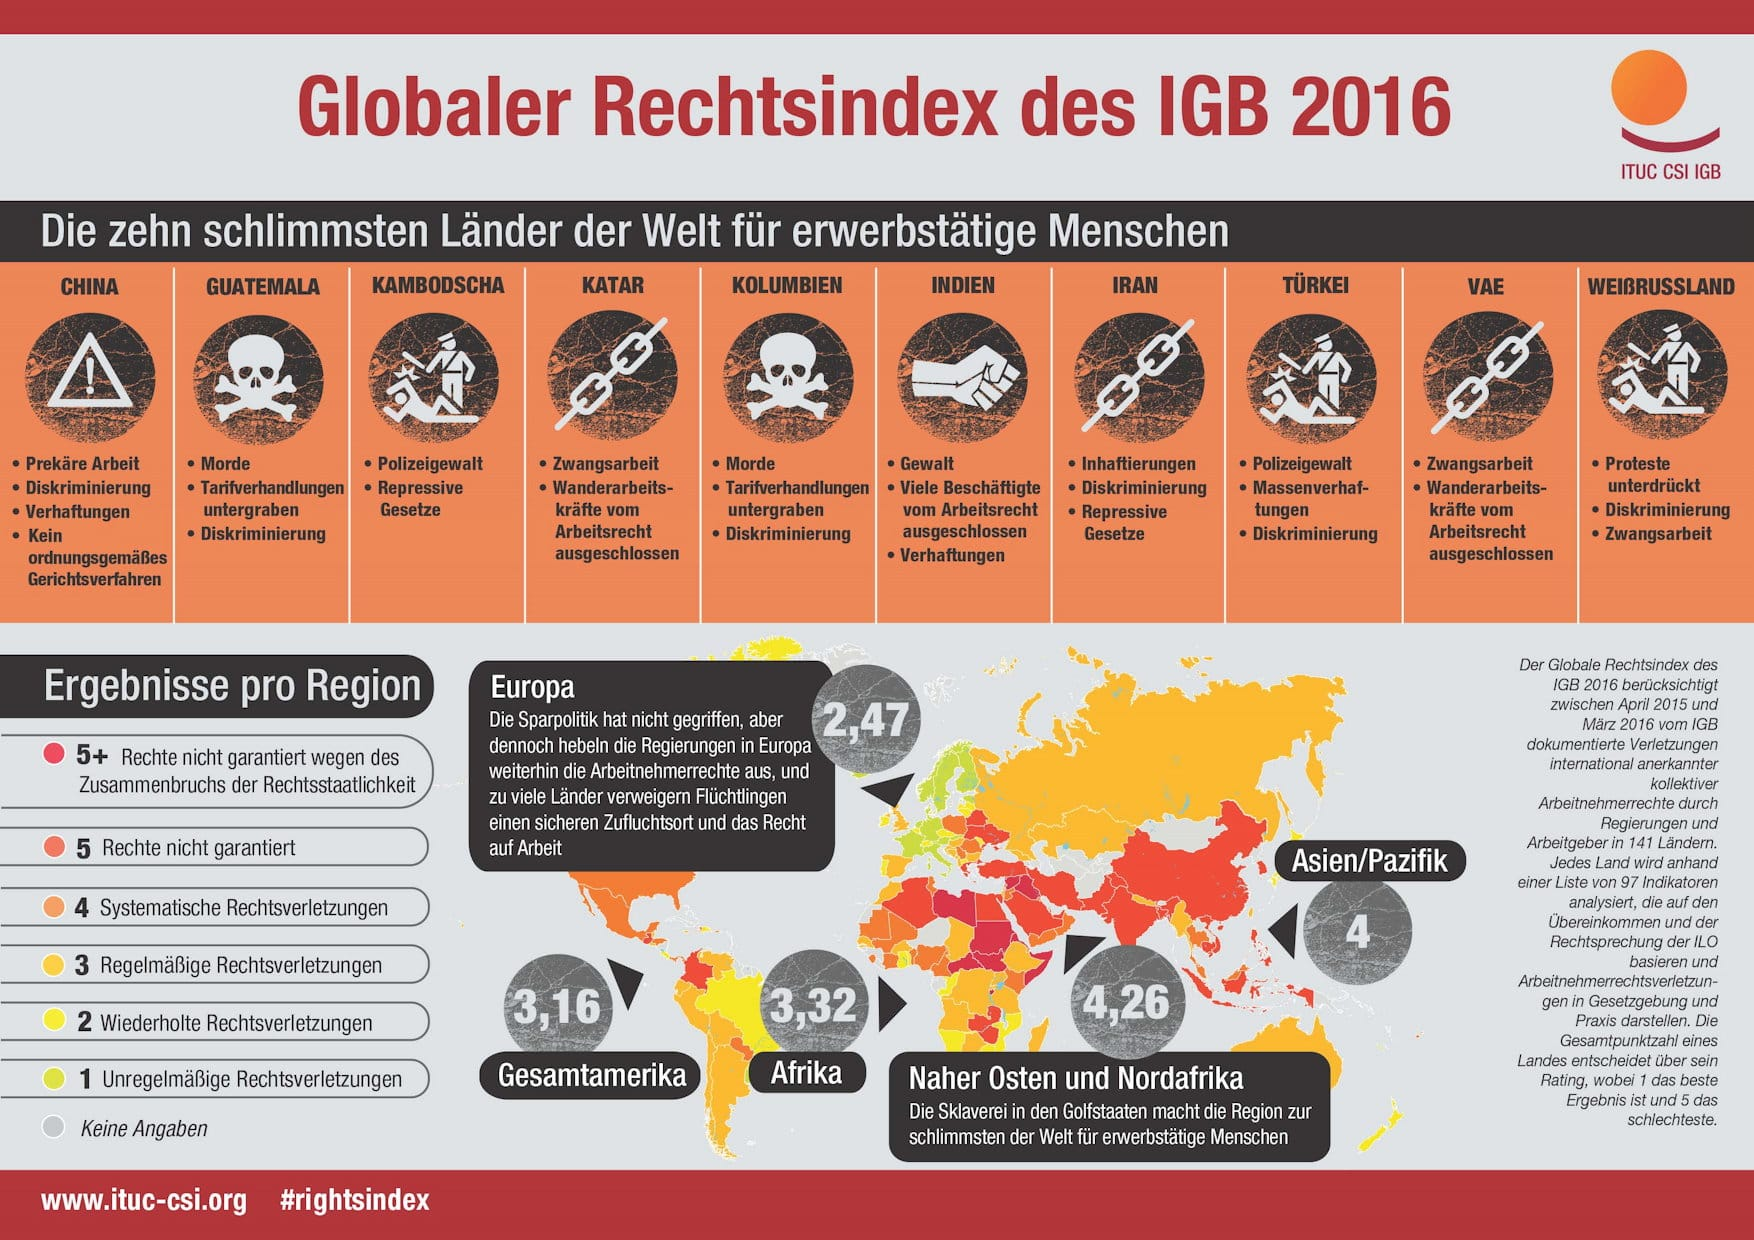 global-rights-index-2-globaler-rechtsindex-international-trade-union-confederation-arbeitnehmerrechte-entdemokratisierung-ausbeutung-rechtsverletzungen-kritisches-netzwerk.jpg